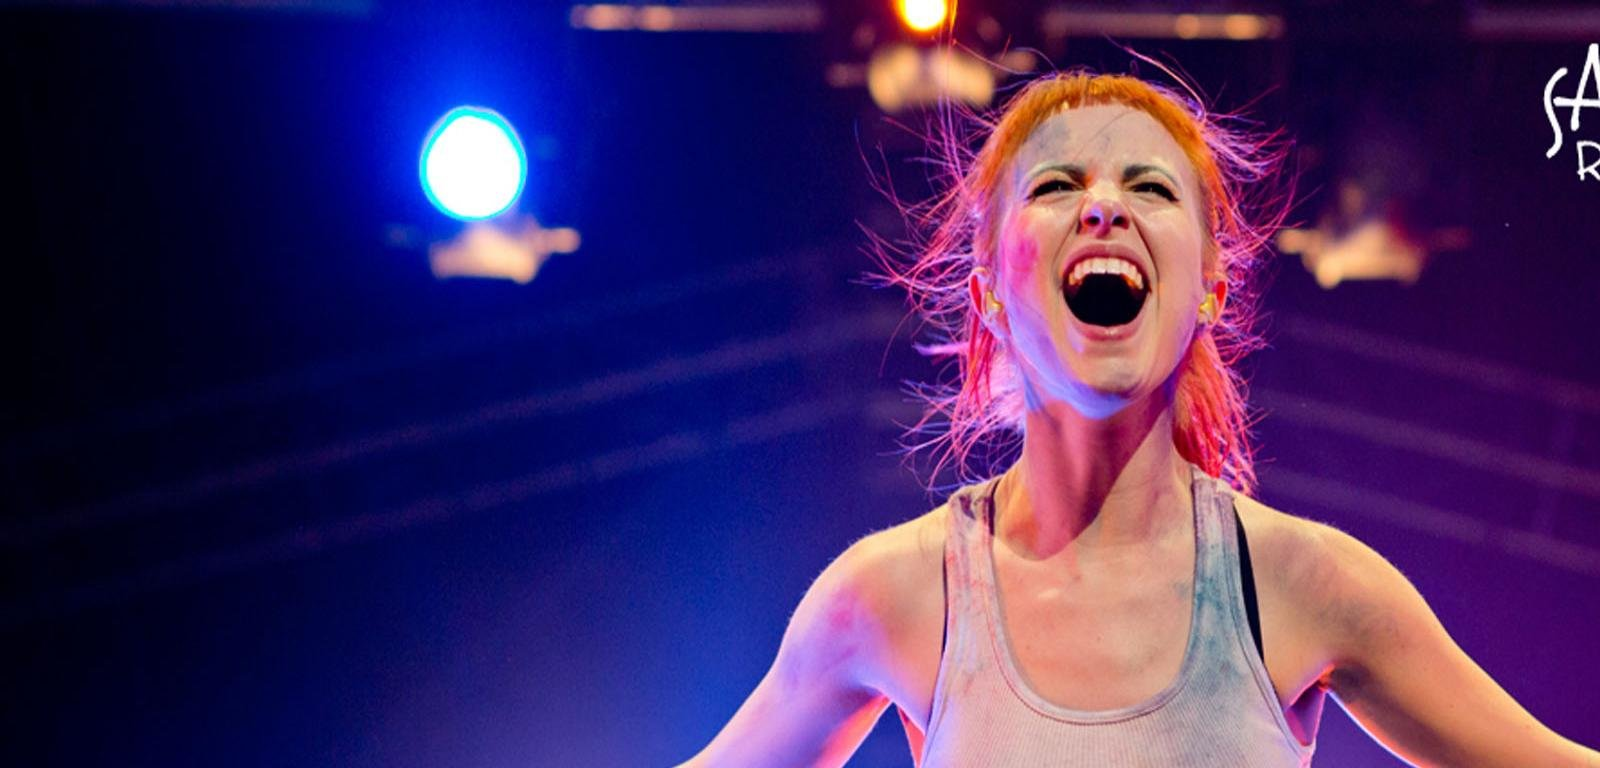 Awesome Hayley Williams Free Wallpaper Id59244 For Hd